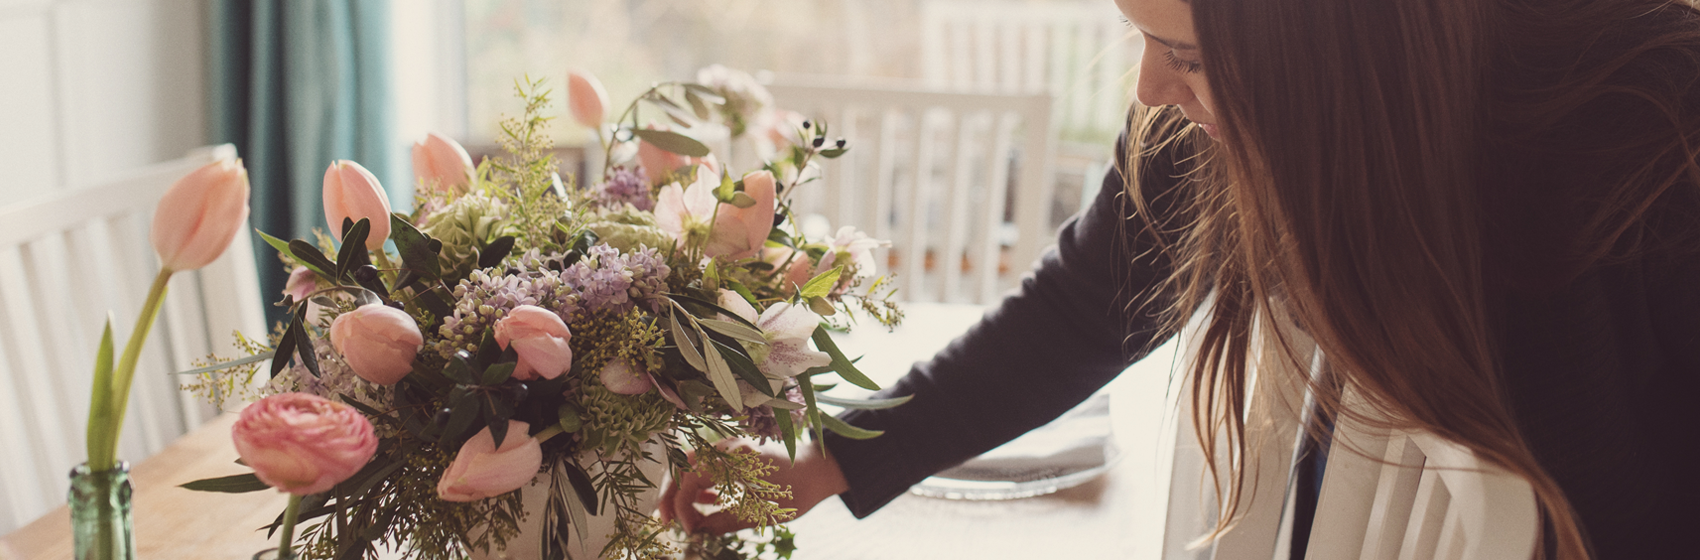 flower arranging workshops by Joanne Truby Floral Design House